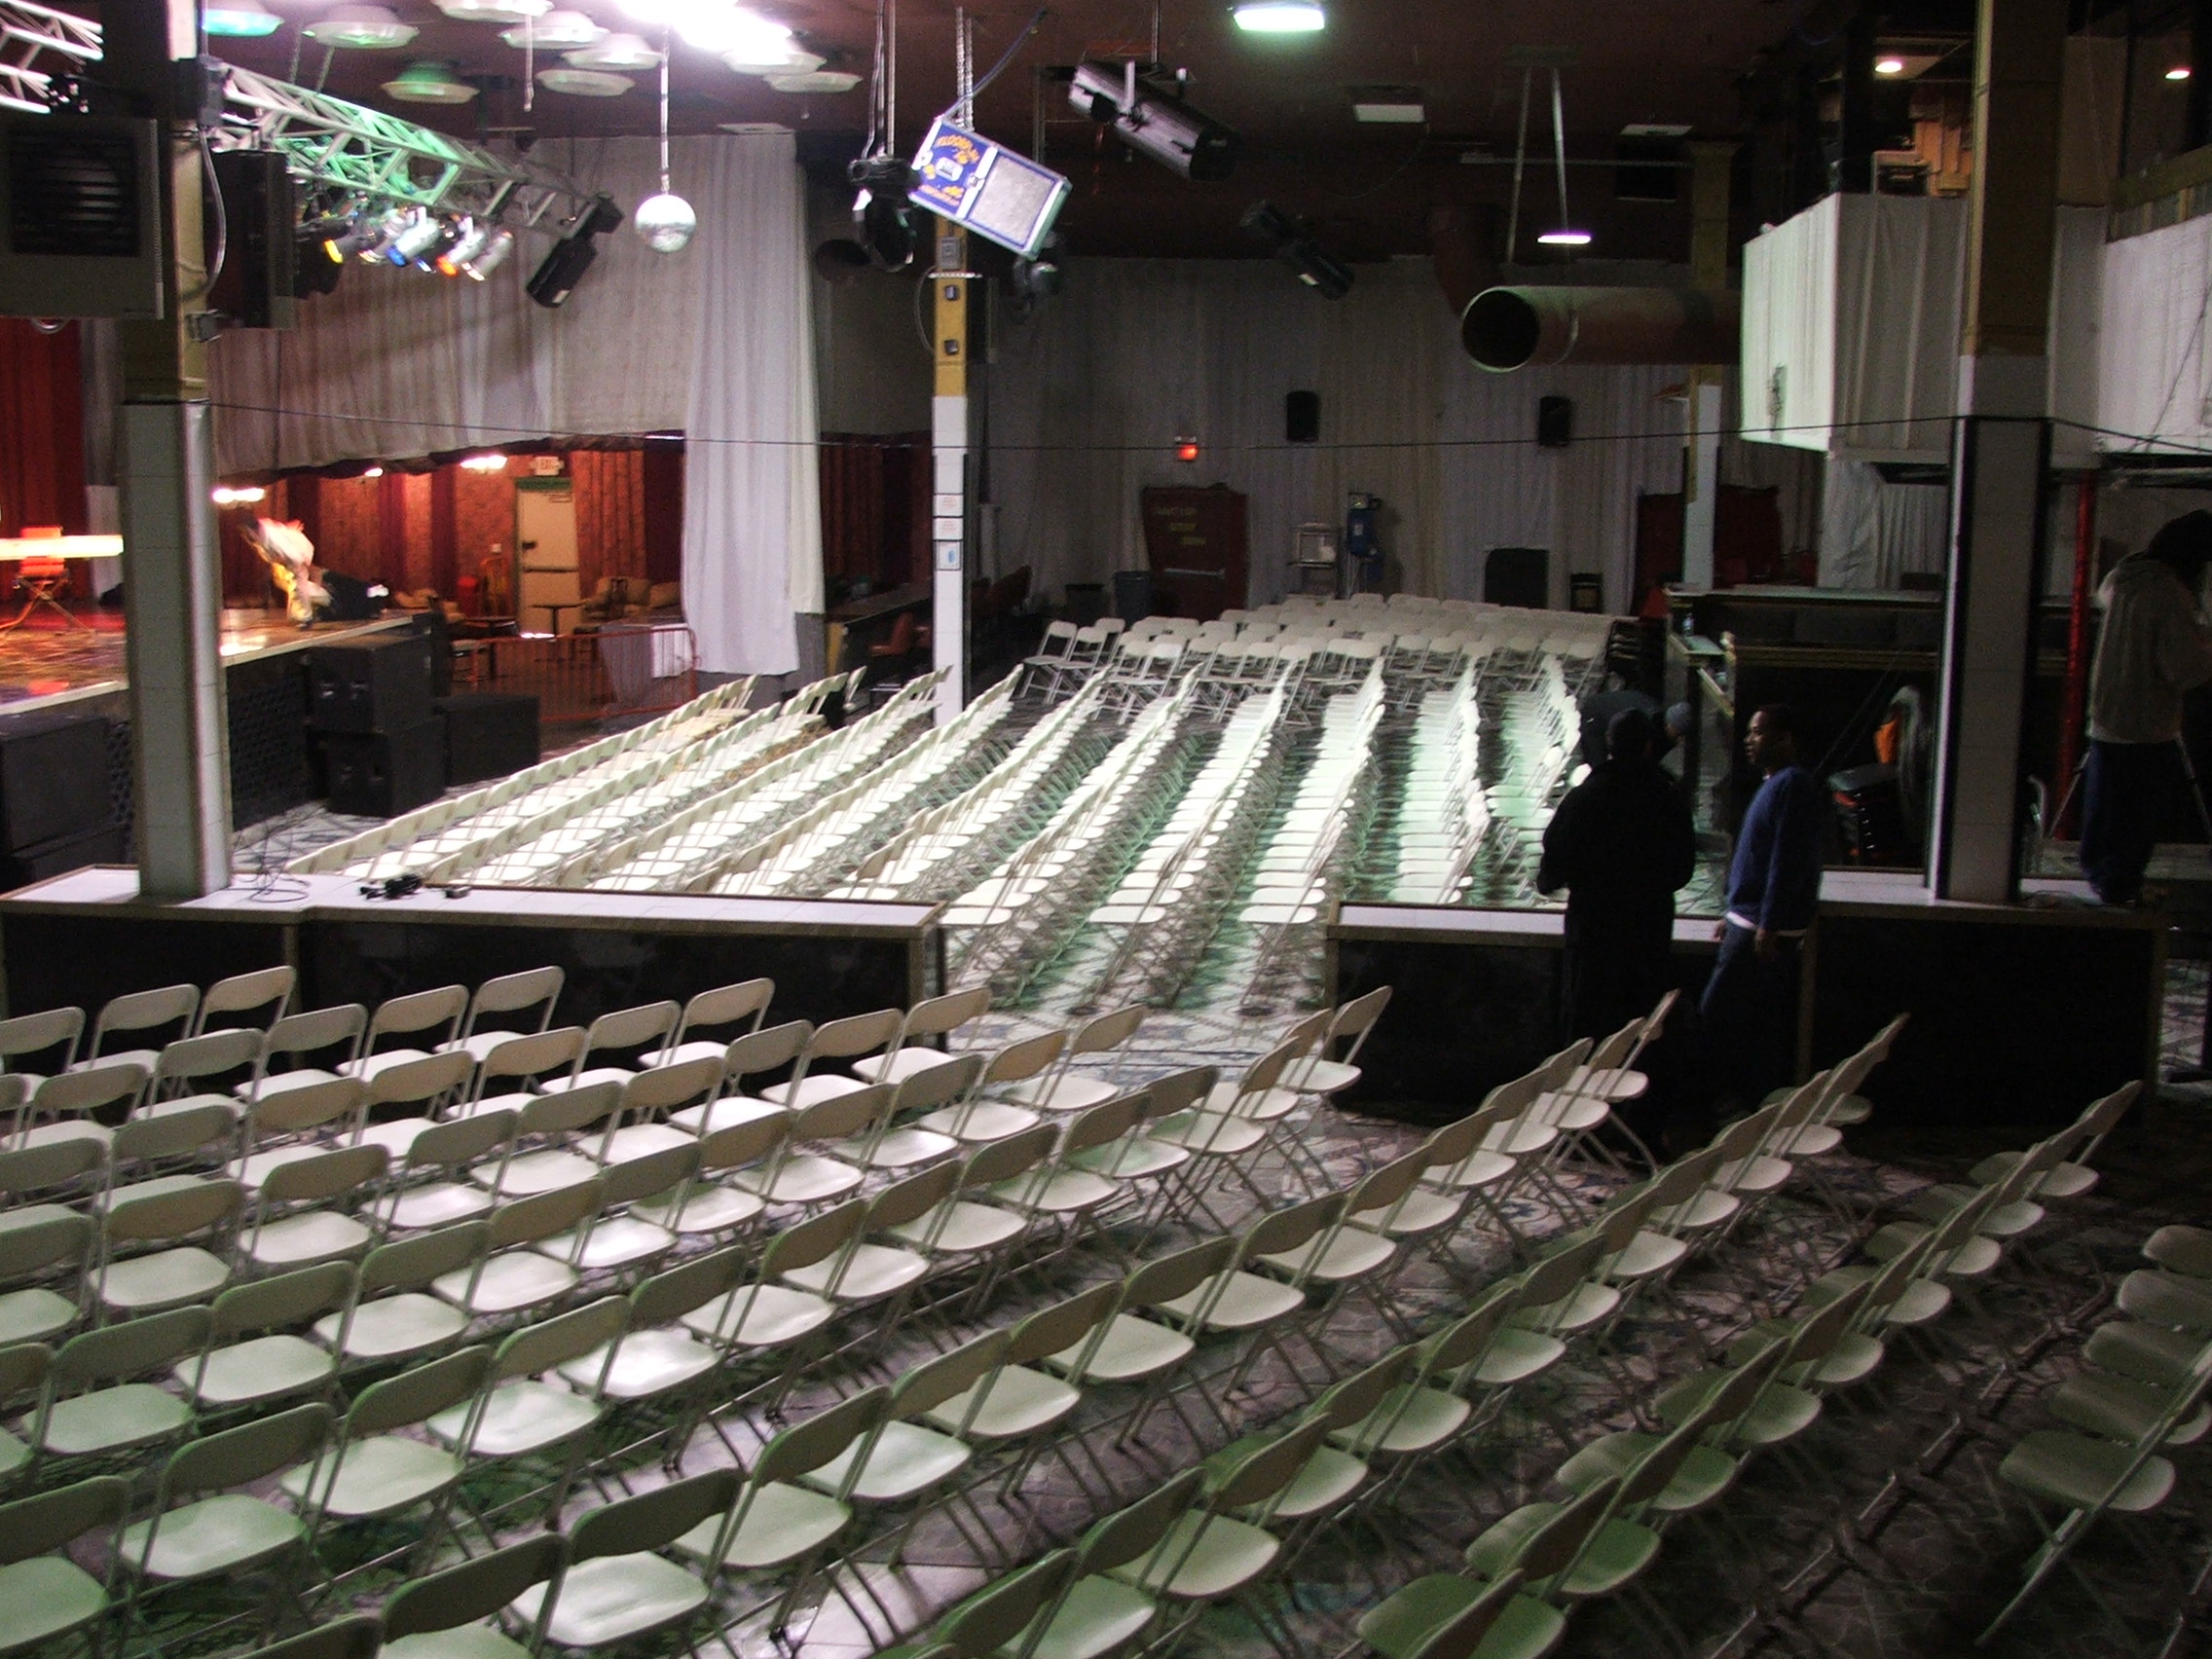 The Atrium Event Center